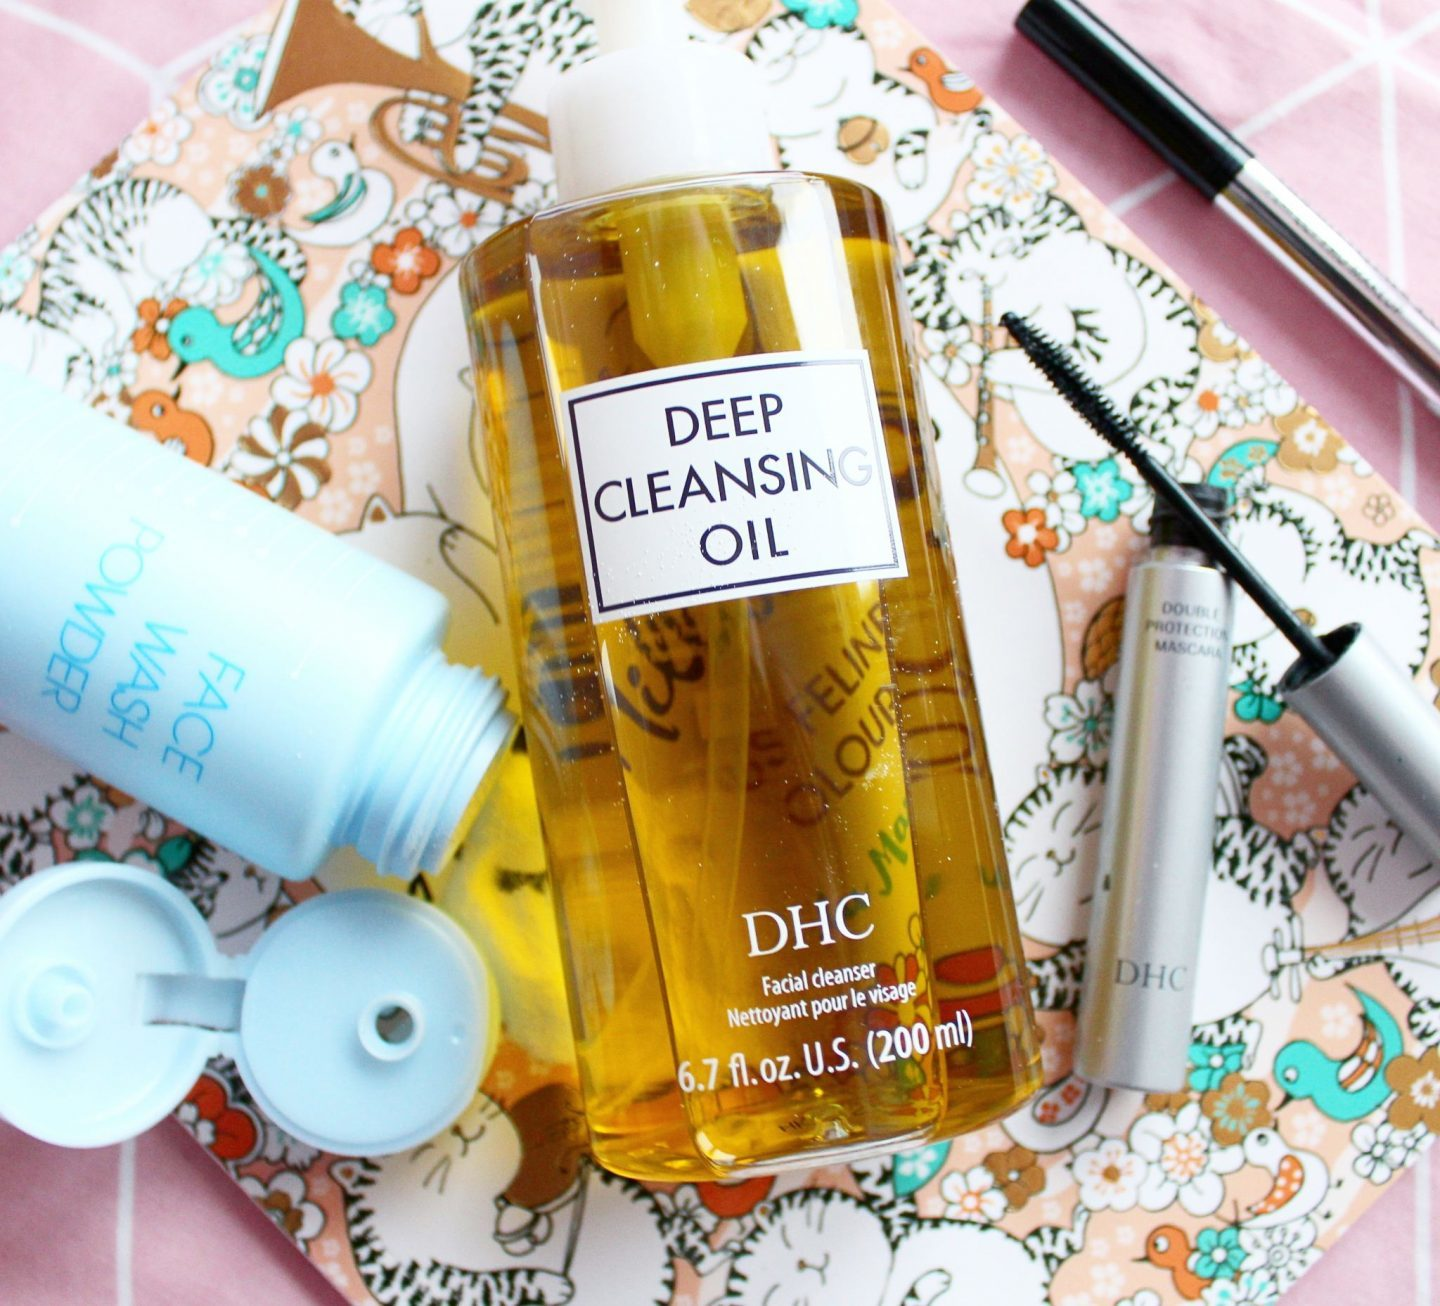 Have you heard of DHC? | An Underrated Beauty Brand You Need to Try!